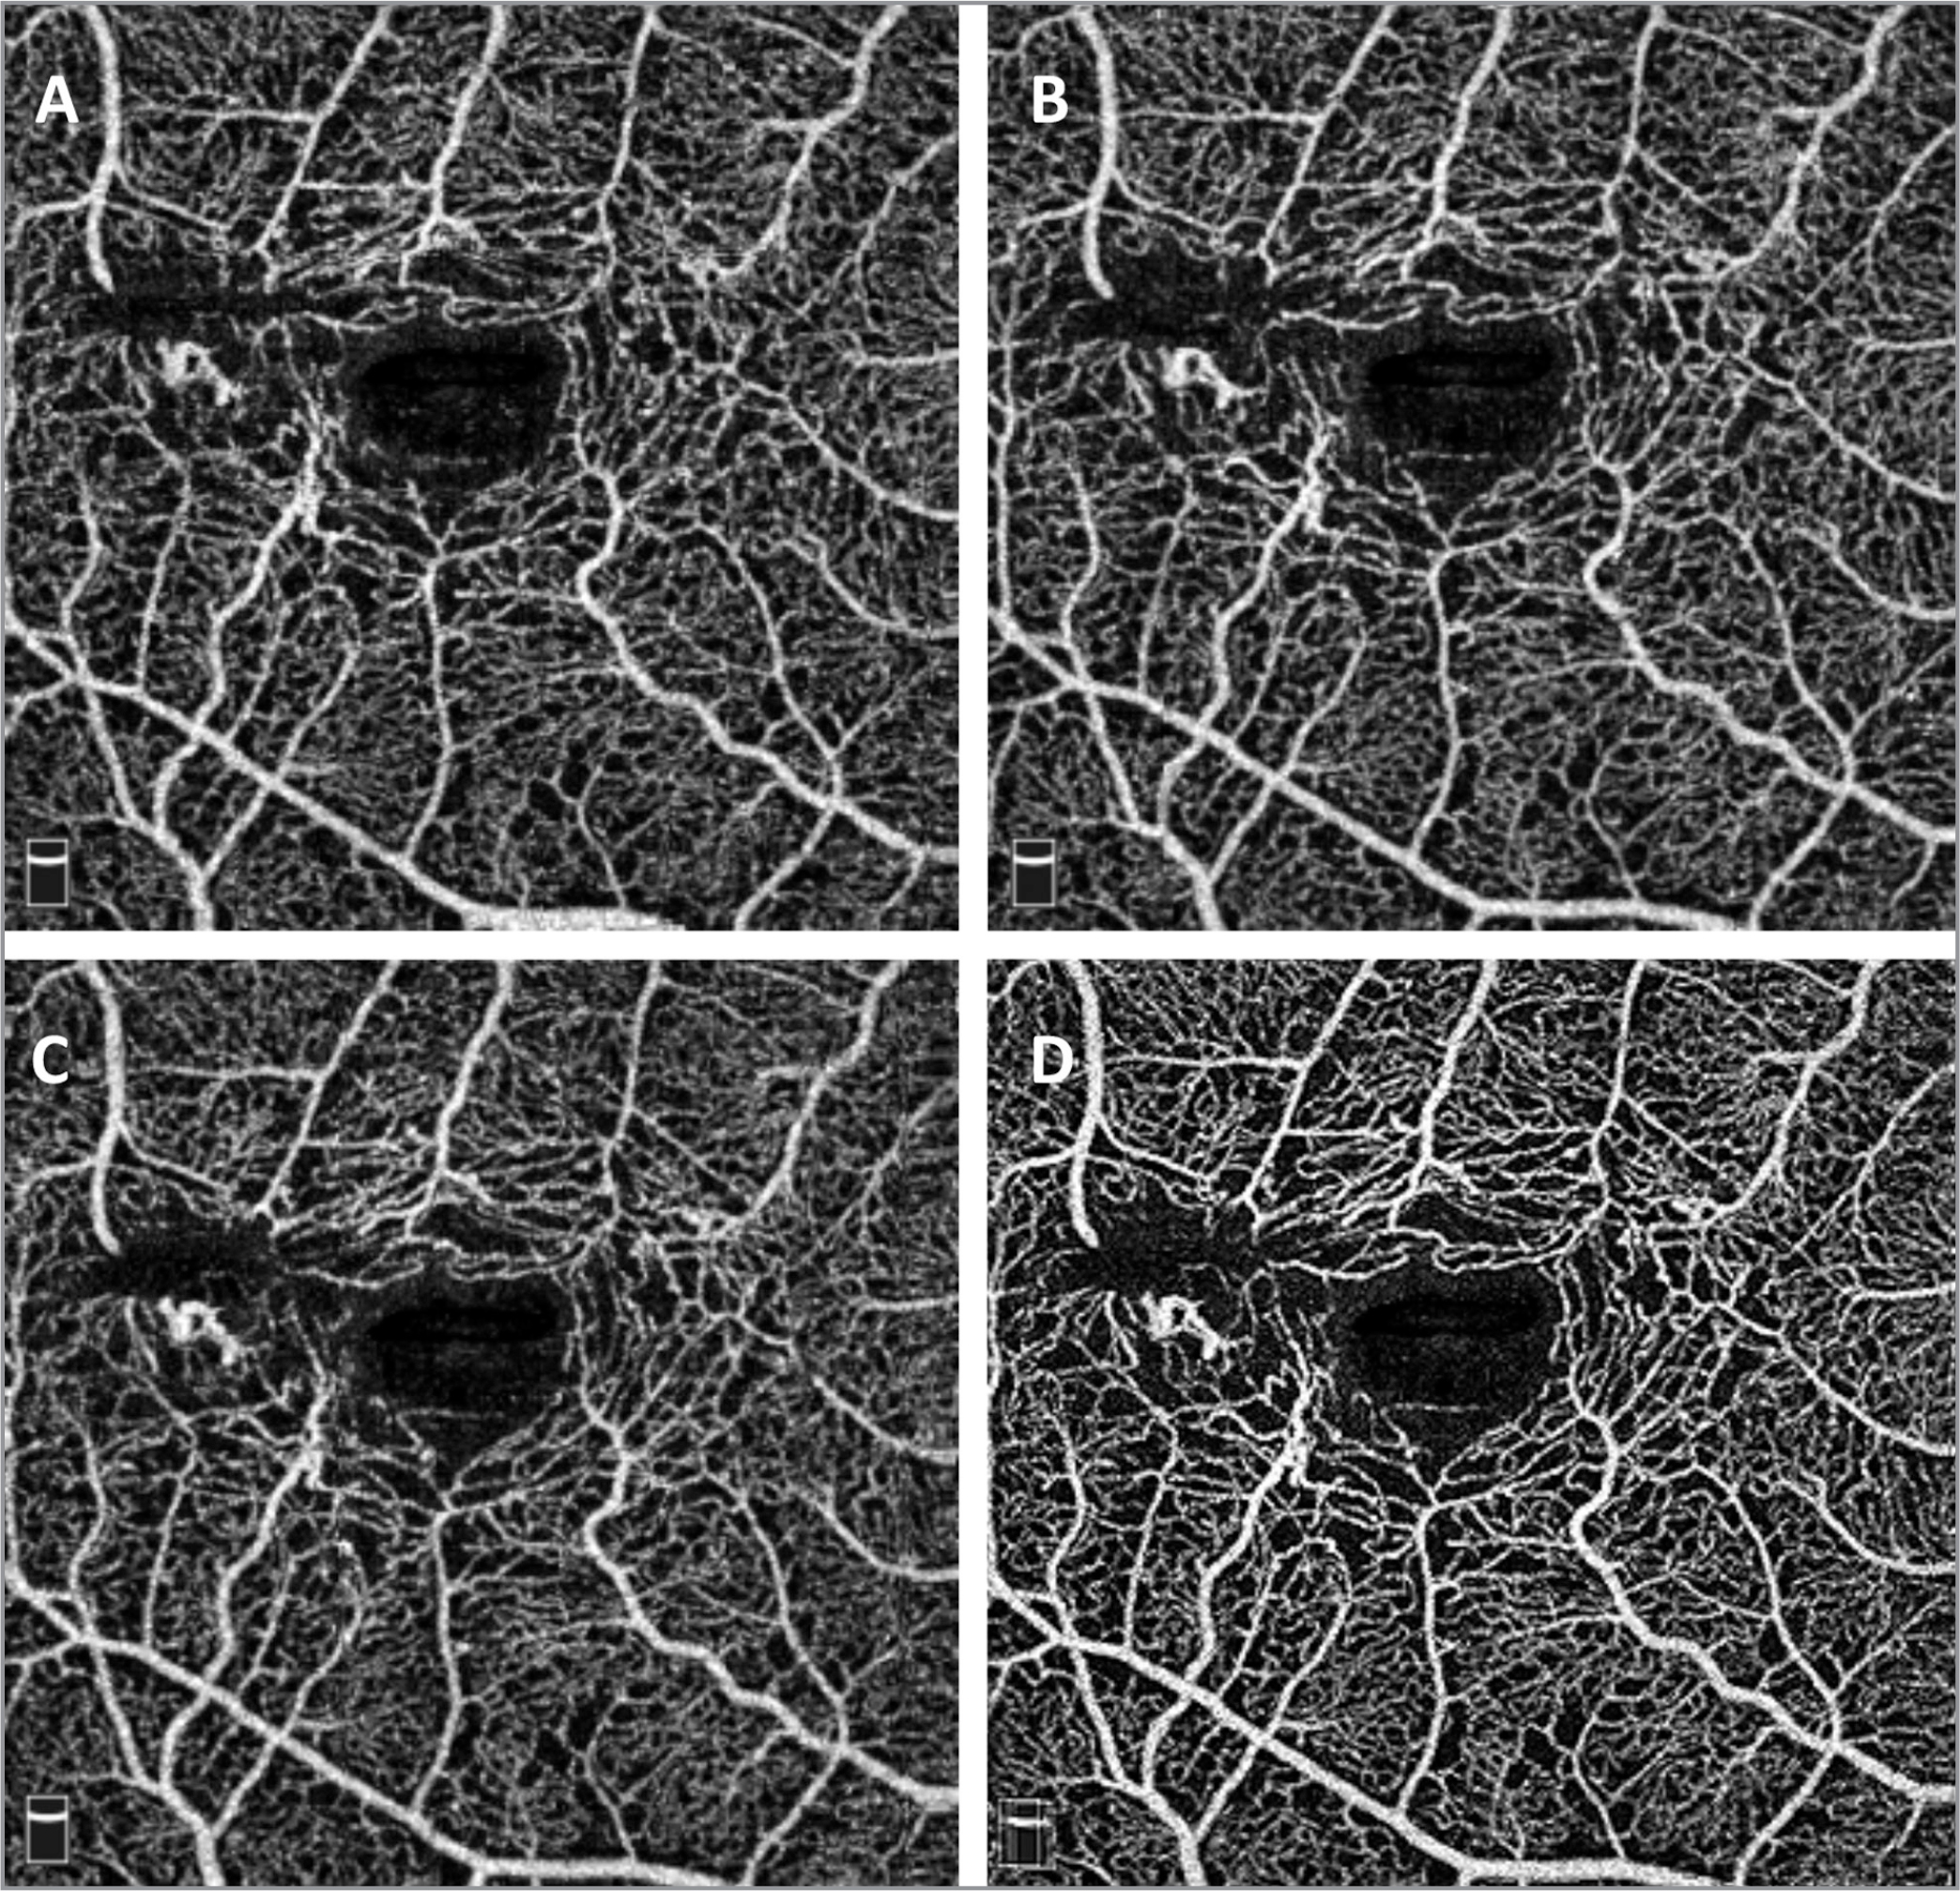 (A–C) 3.0 mm × 3.0 mm spectral-domain optical coherence tomography angiograms of the superficial capillary plexus scan taken using the Optovue Angiovue in a patient with macular telangiectasia (MacTel) type 2. (D) Photoshop averaged image of 3.0 mm × 3 .0 mm scans of the same patient with MacTel type 2 illustrating improved detail of the telangiectatic vessels of the superficial plexus.